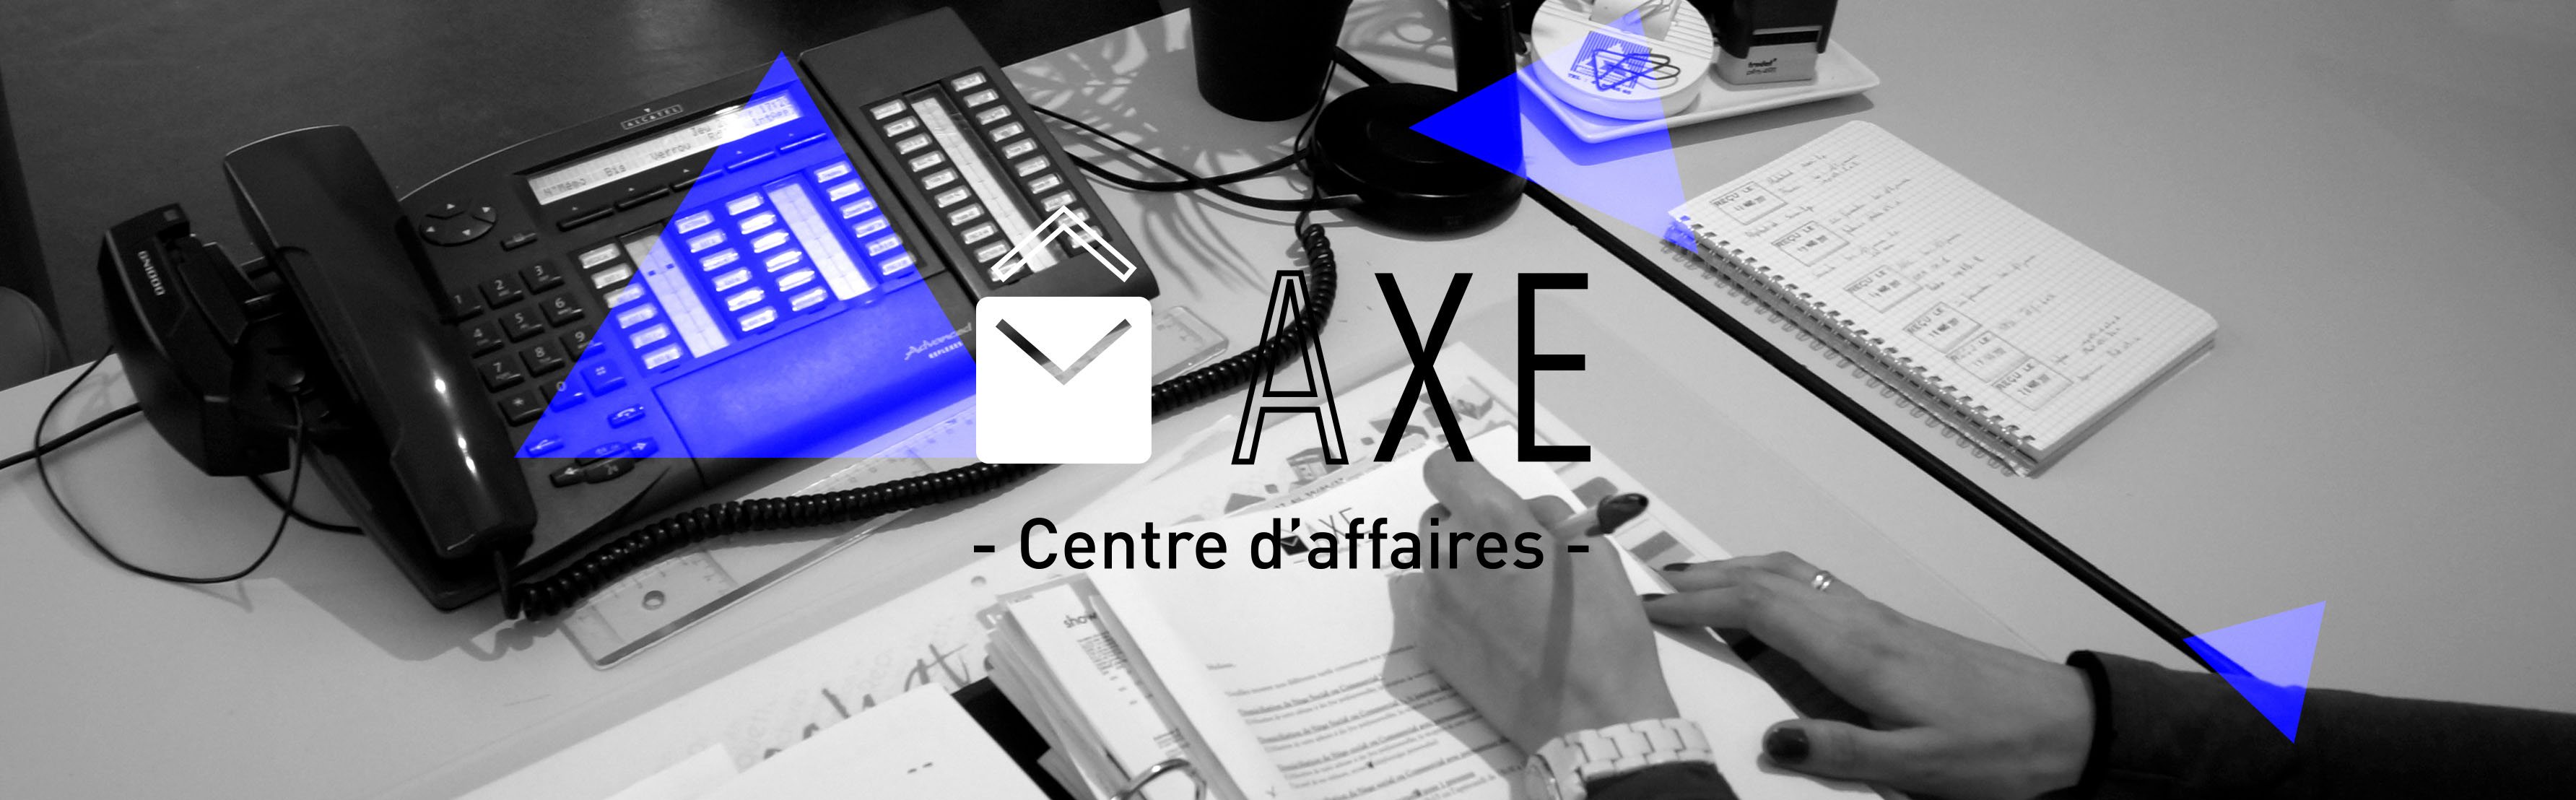 Centre d'affaire axe tours